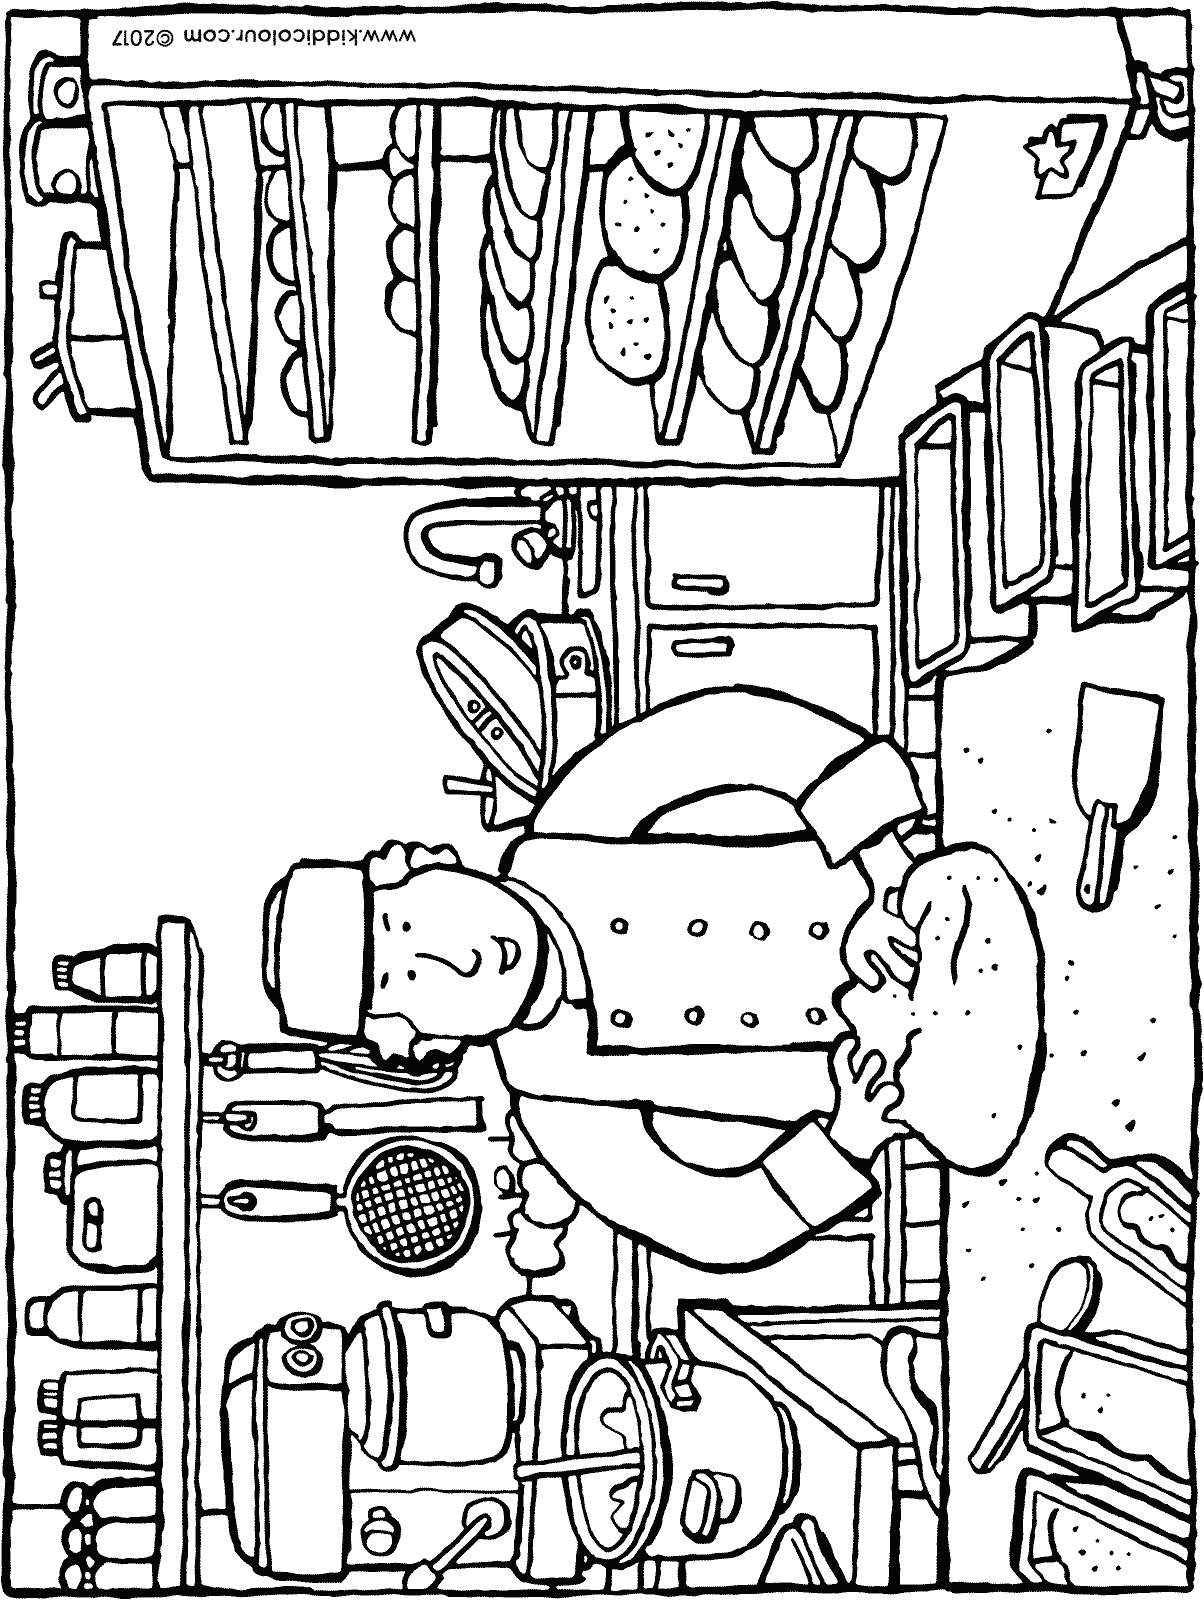 baker baking bread colouring page drawing picture 01H